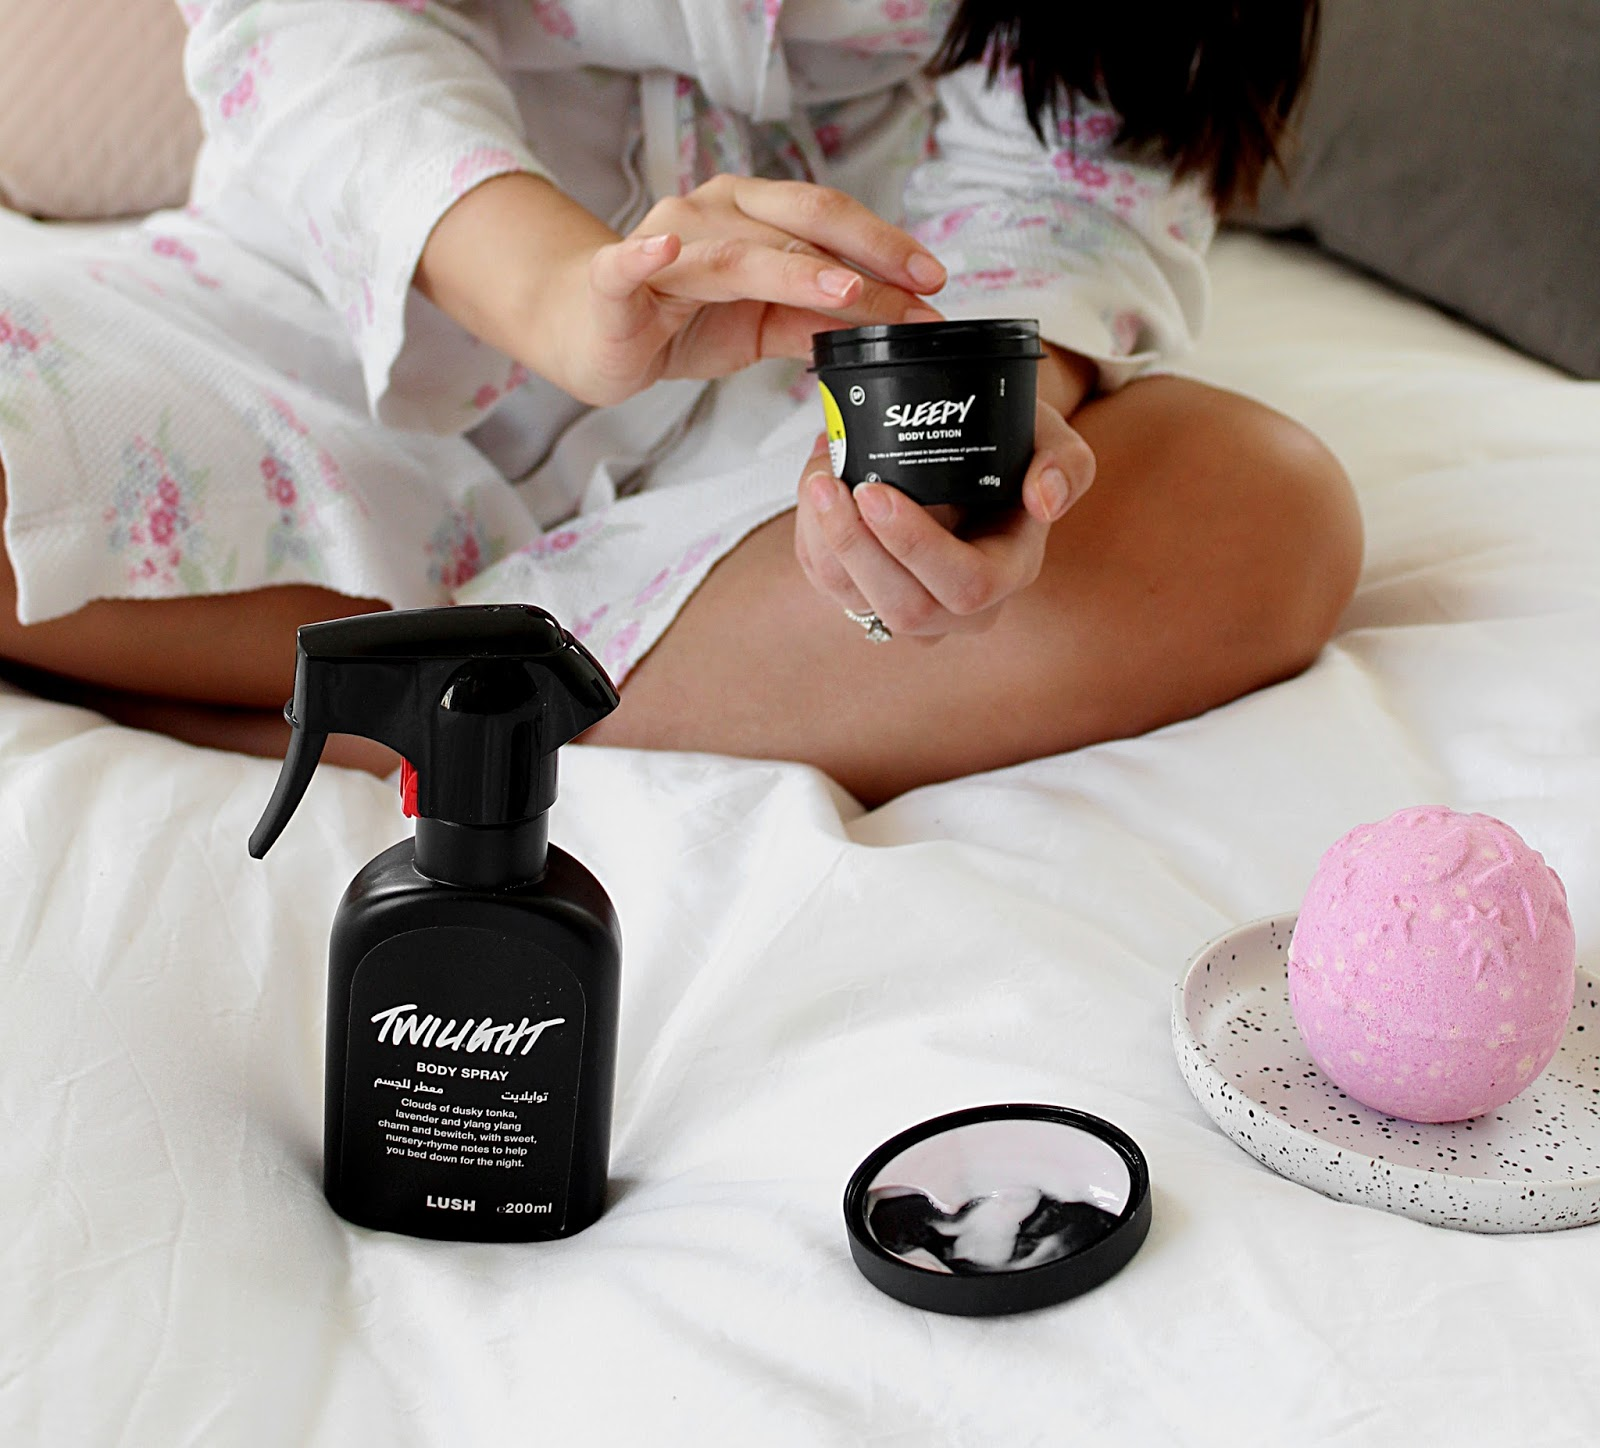 Get A Good Night's Sleep With LUSH, Life in Excess Blog